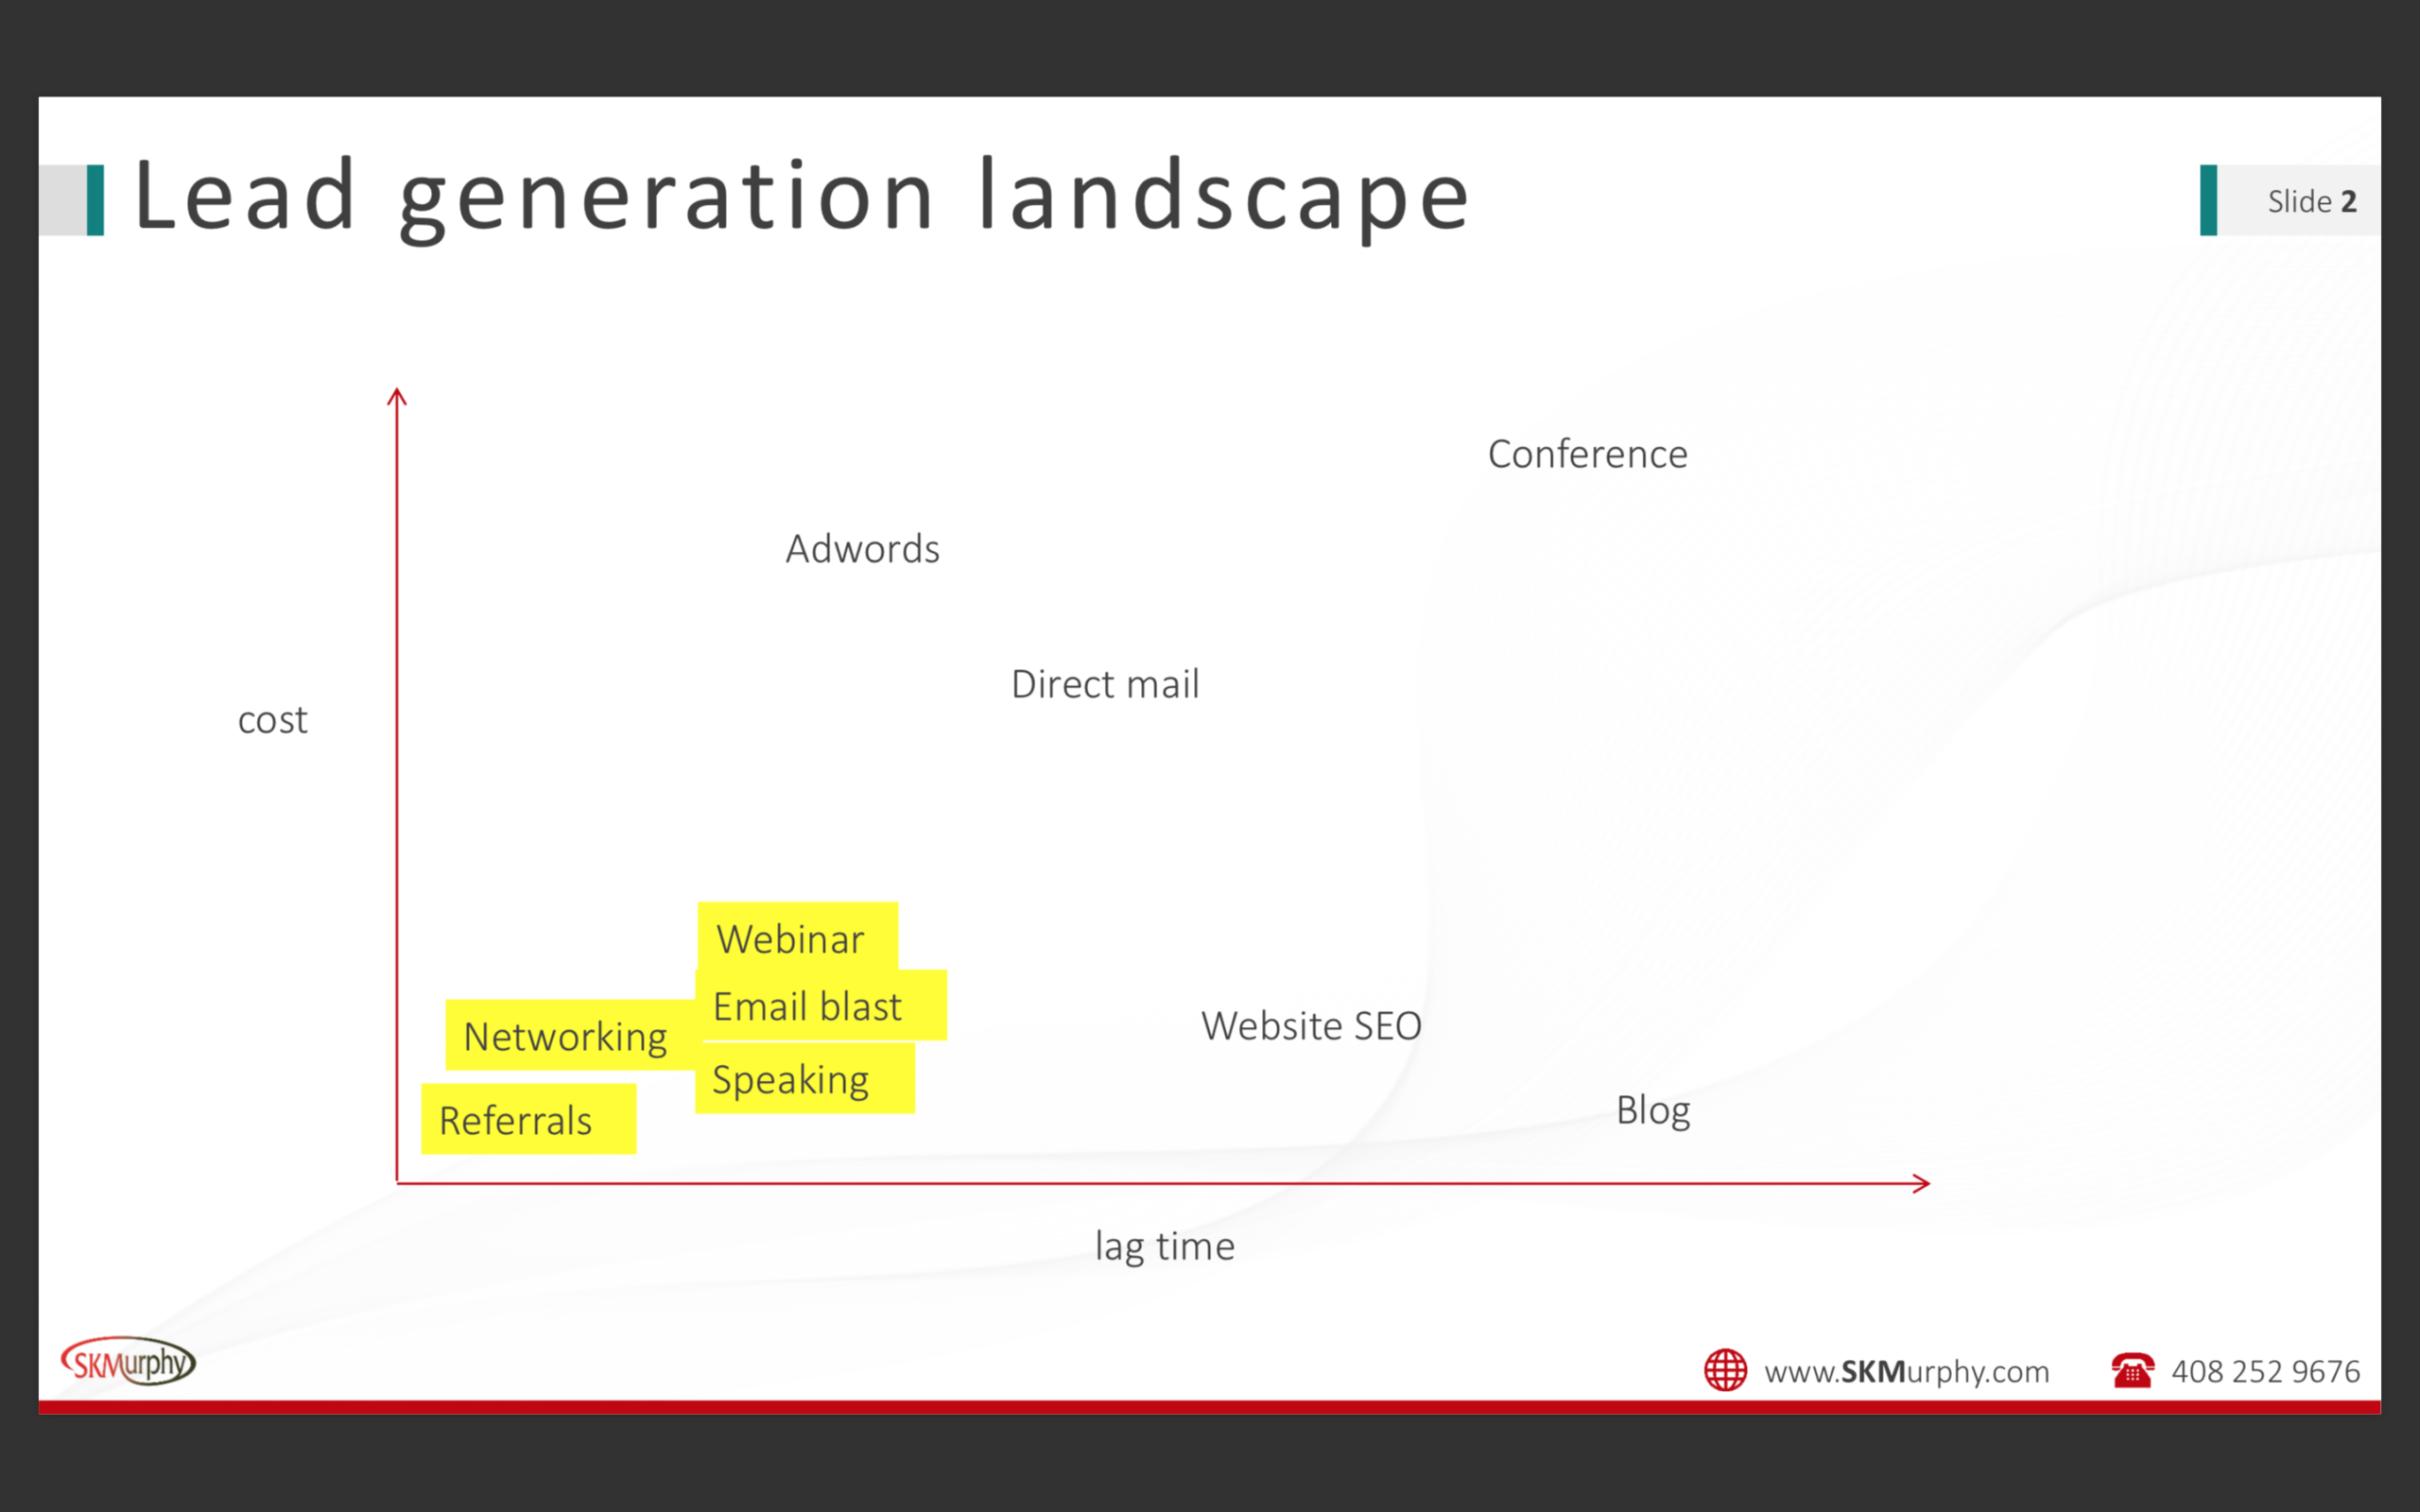 A look at the Lead Generation Landscape shows that referrals are the best way to get leads